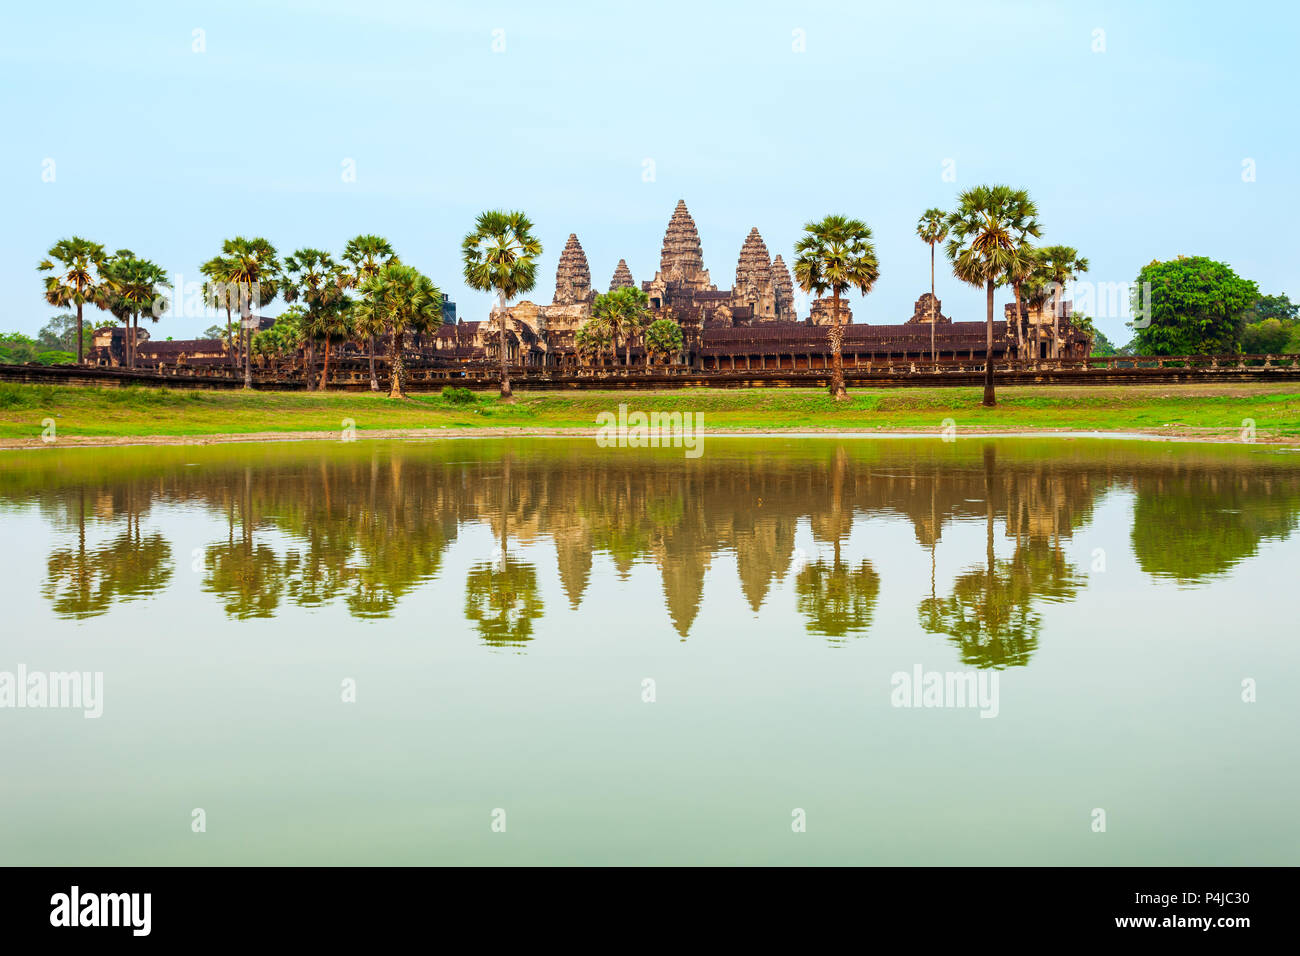 Angkor Wat temple in Siem Reap in Cambodia at sunset. Angkor Wat is the largest religious monument in the world. - Stock Image